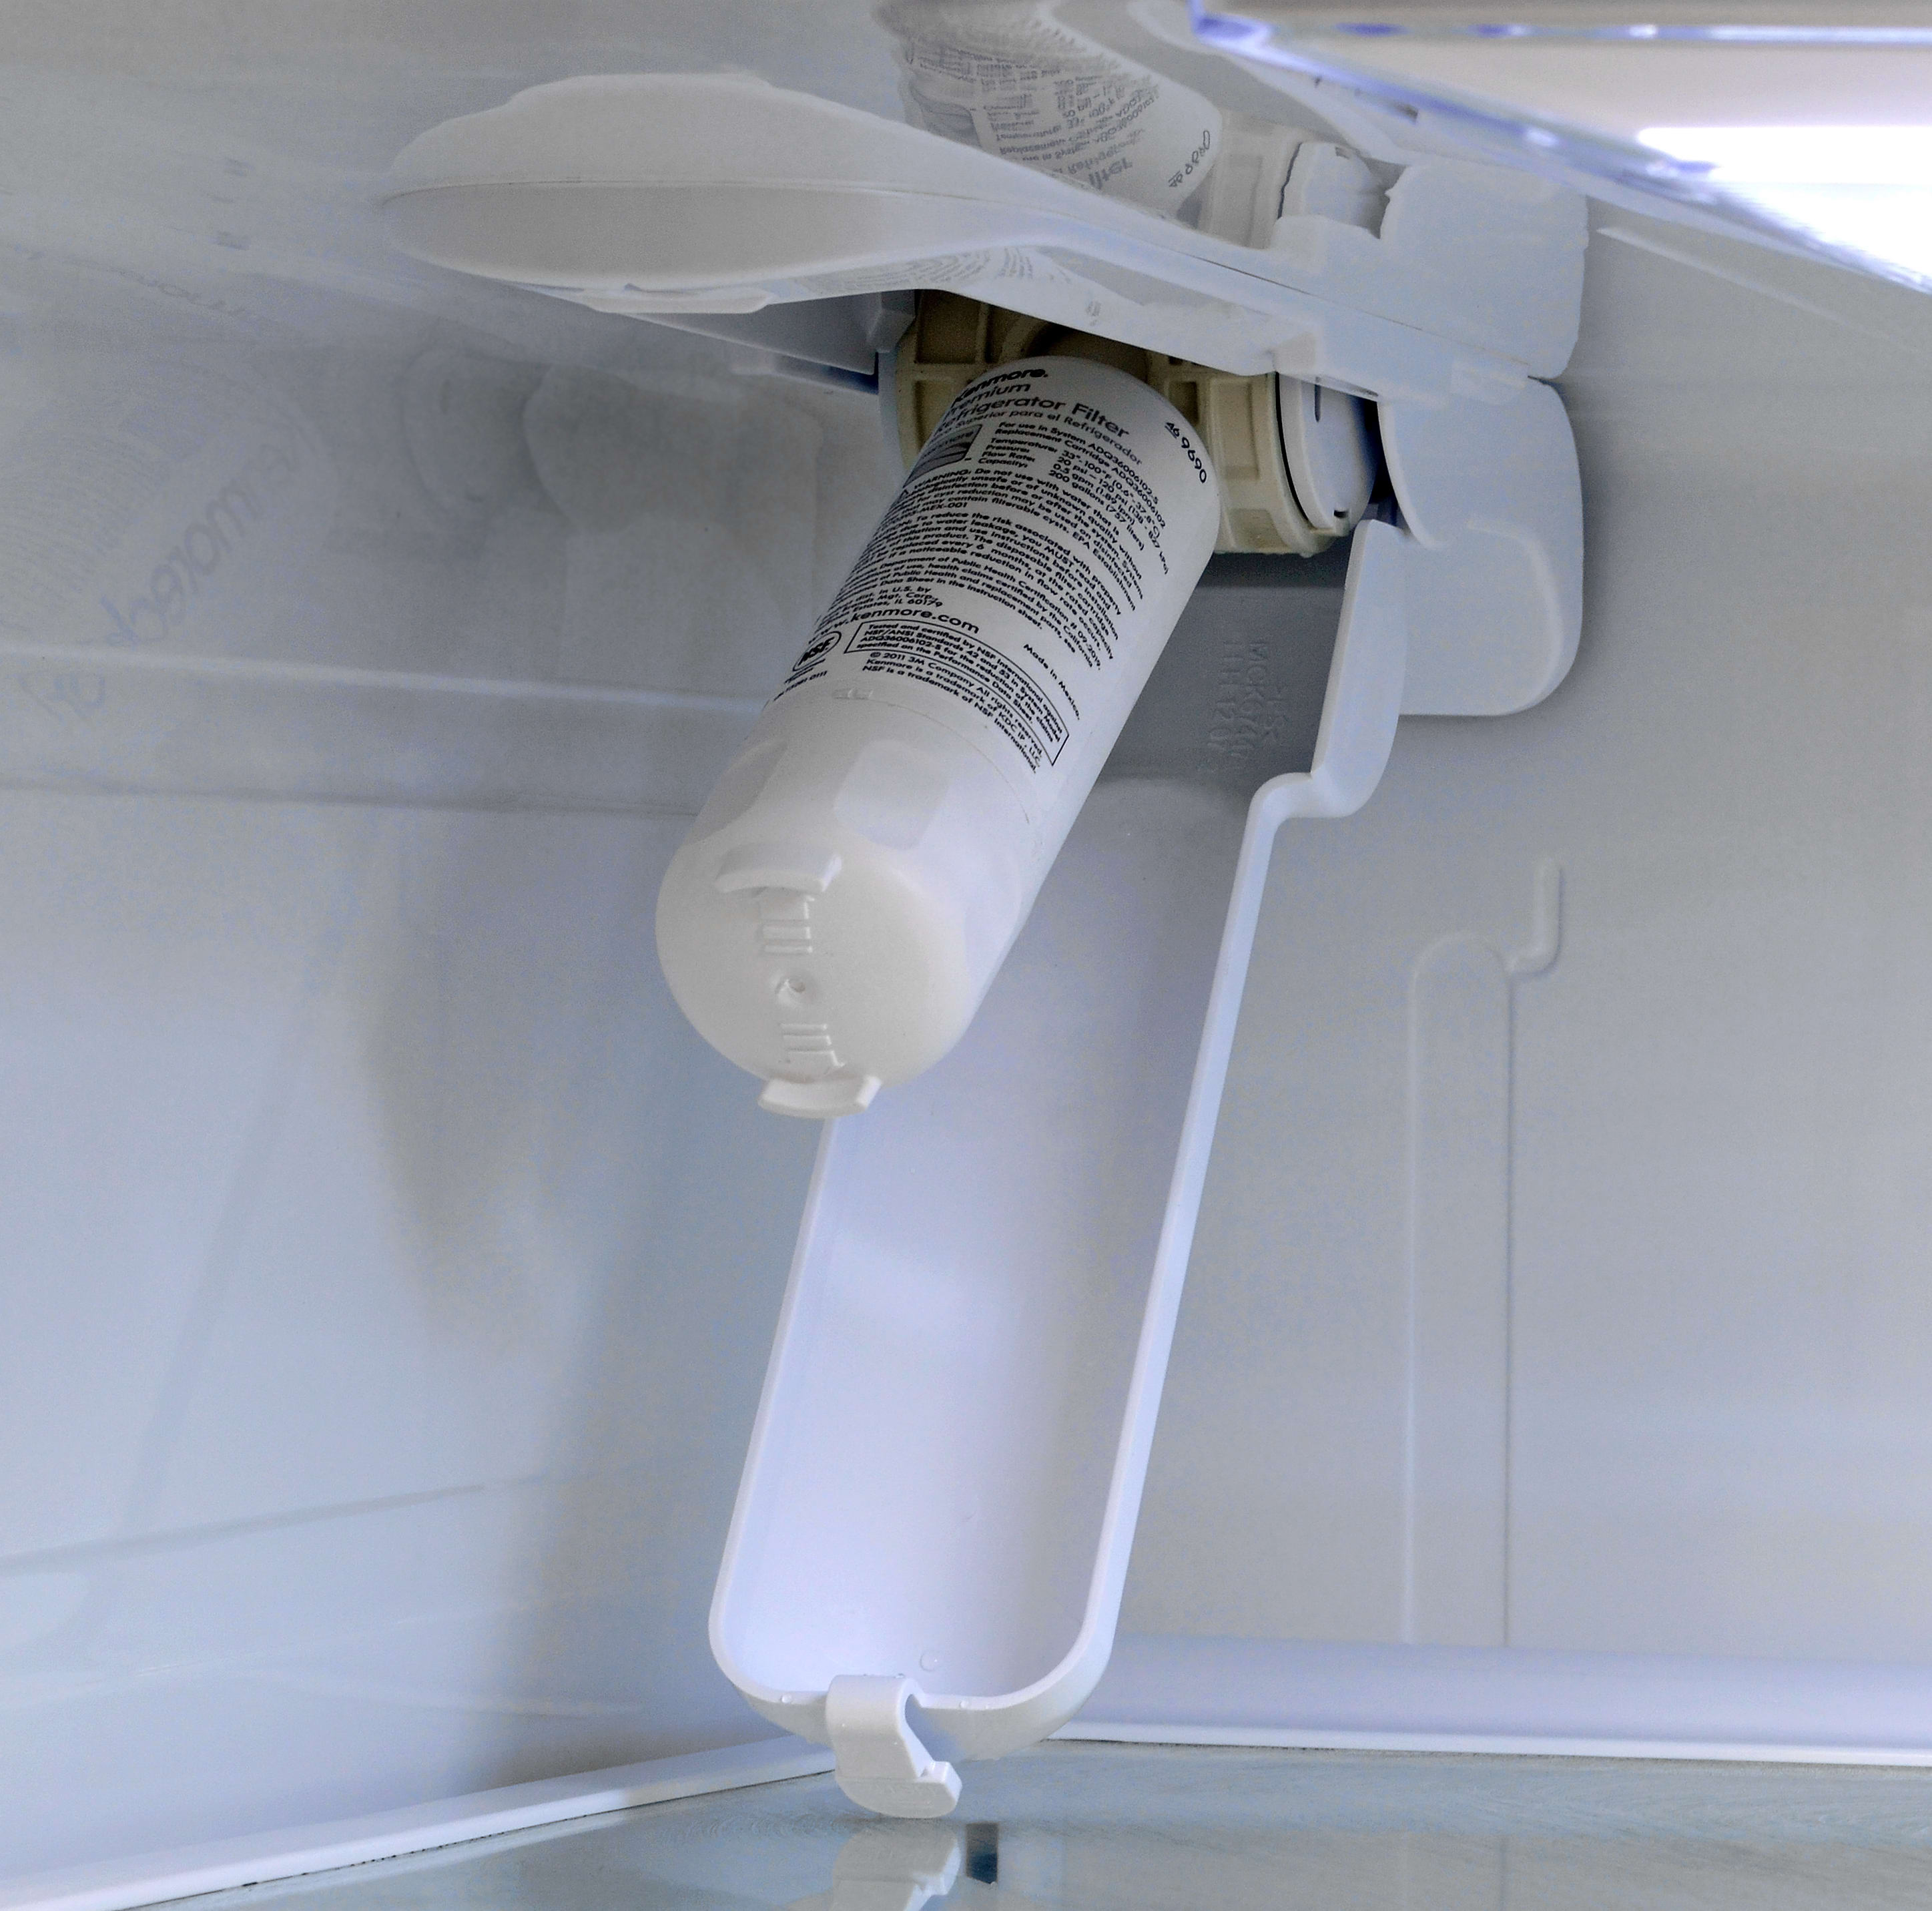 A partially recessed water filter is found in the top of the Kenmore 70333's main fridge compartment.